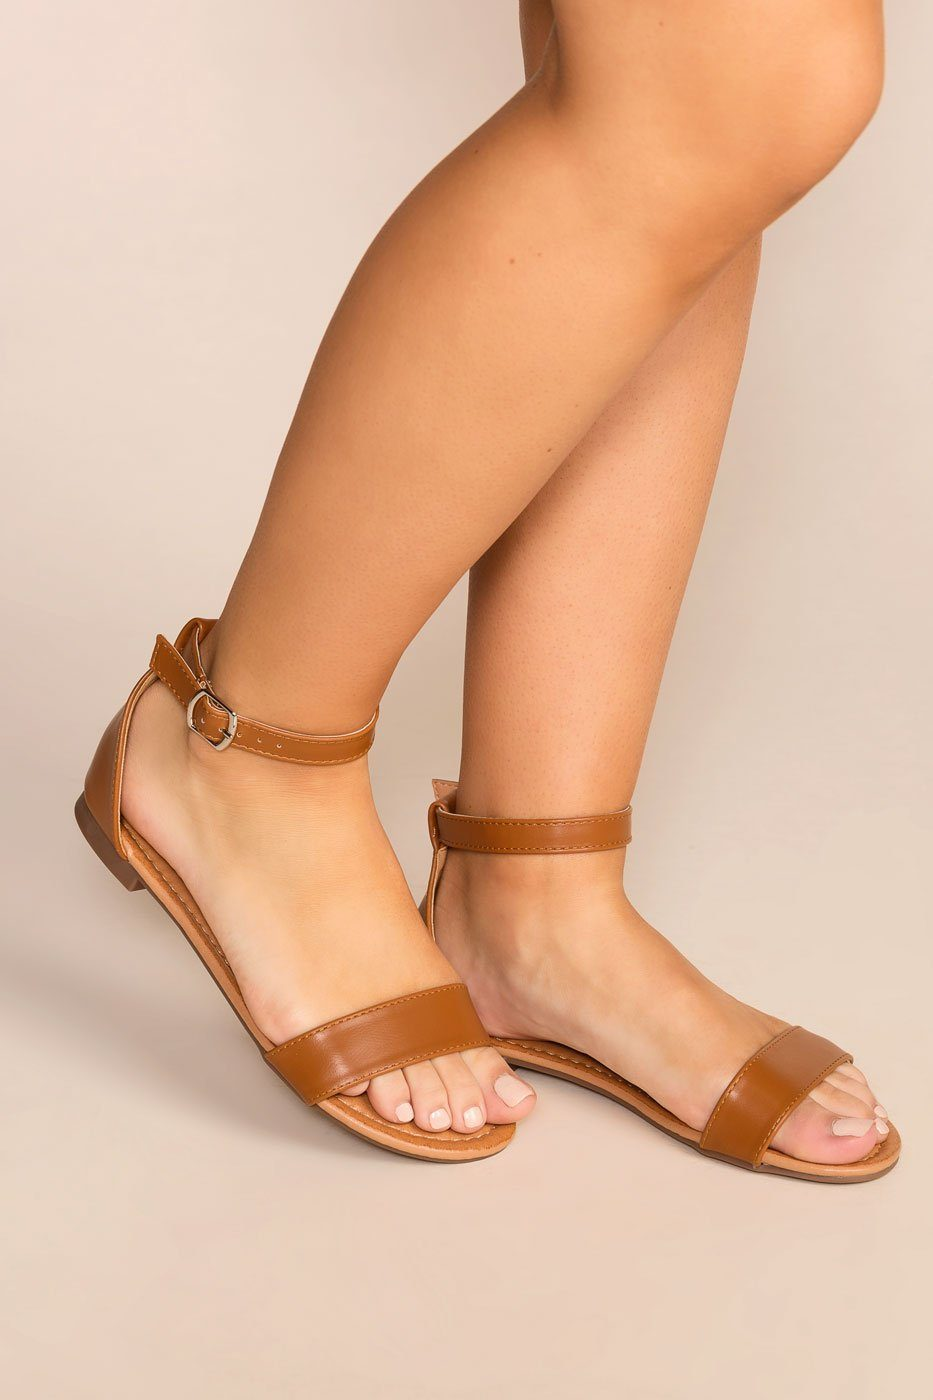 Ankle strap sandals, Ankle strap